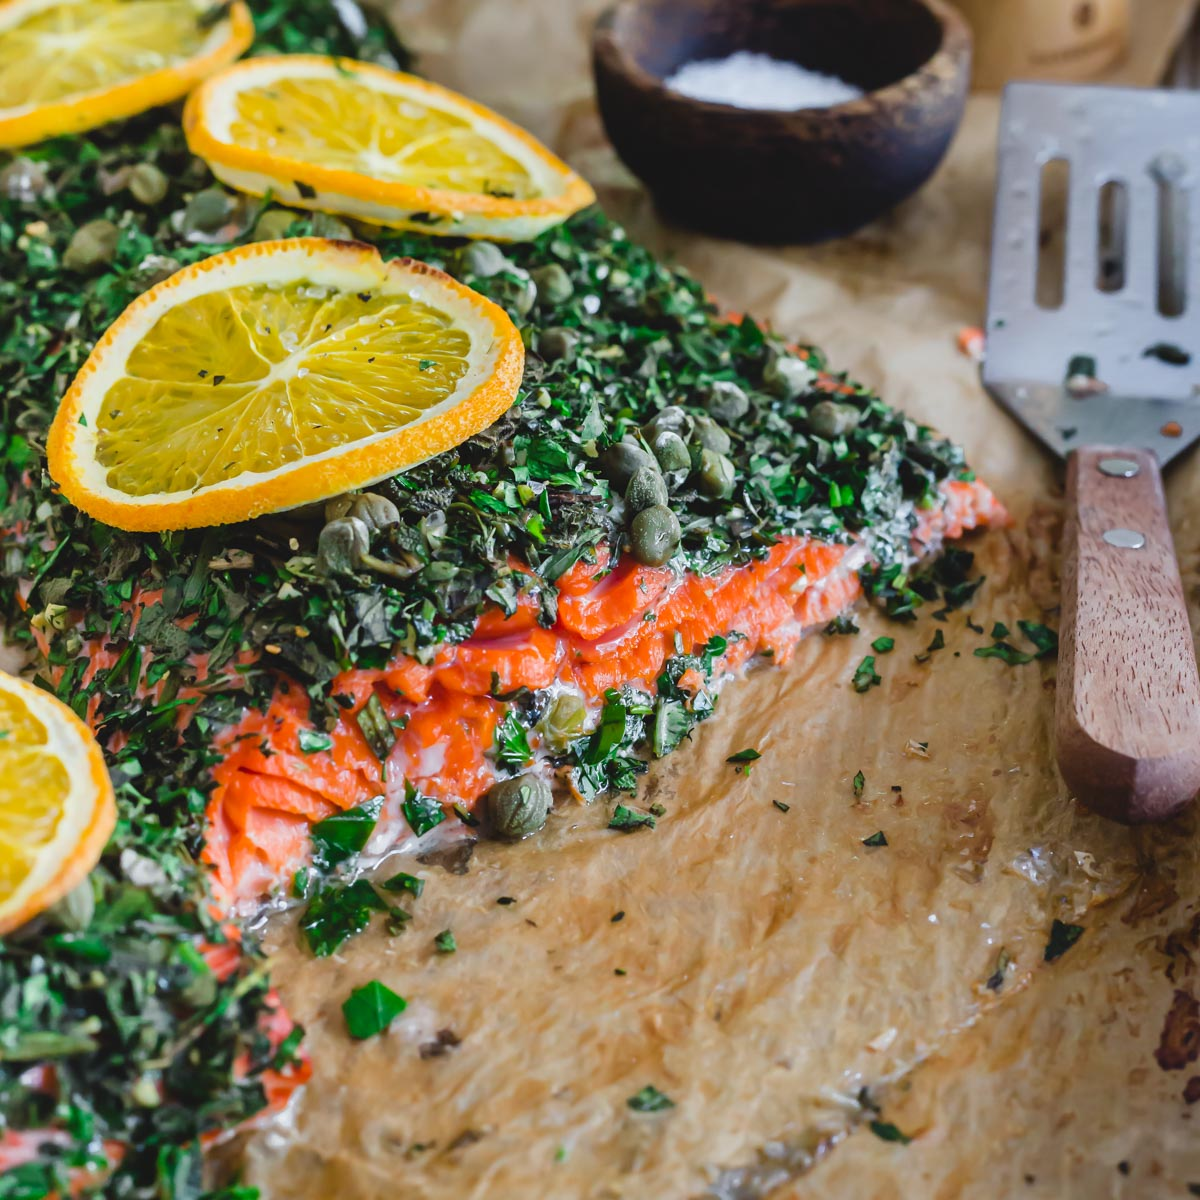 Bright red baked wild sockeye salmon with an herb crust on a baking sheet with spatula for serving.